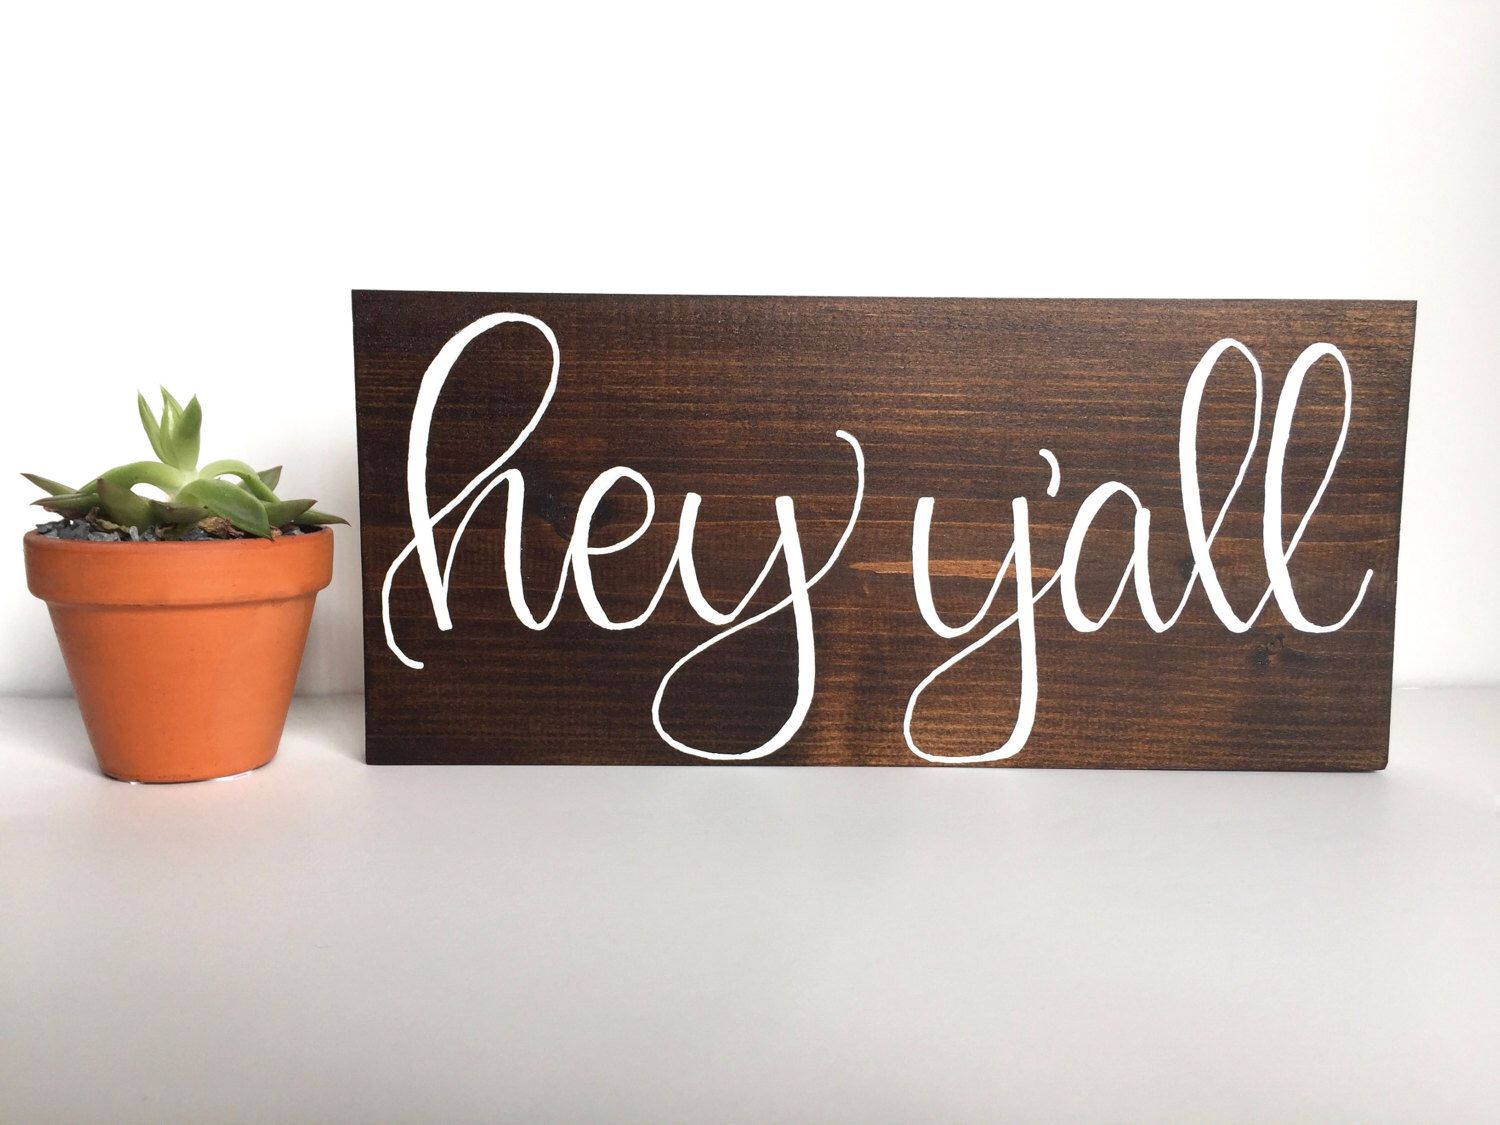 Welcome Sign Decor Unique Hey Y'all Wooden Sign Wood Sign Welcome Sign Southern Decor Inspiration Design